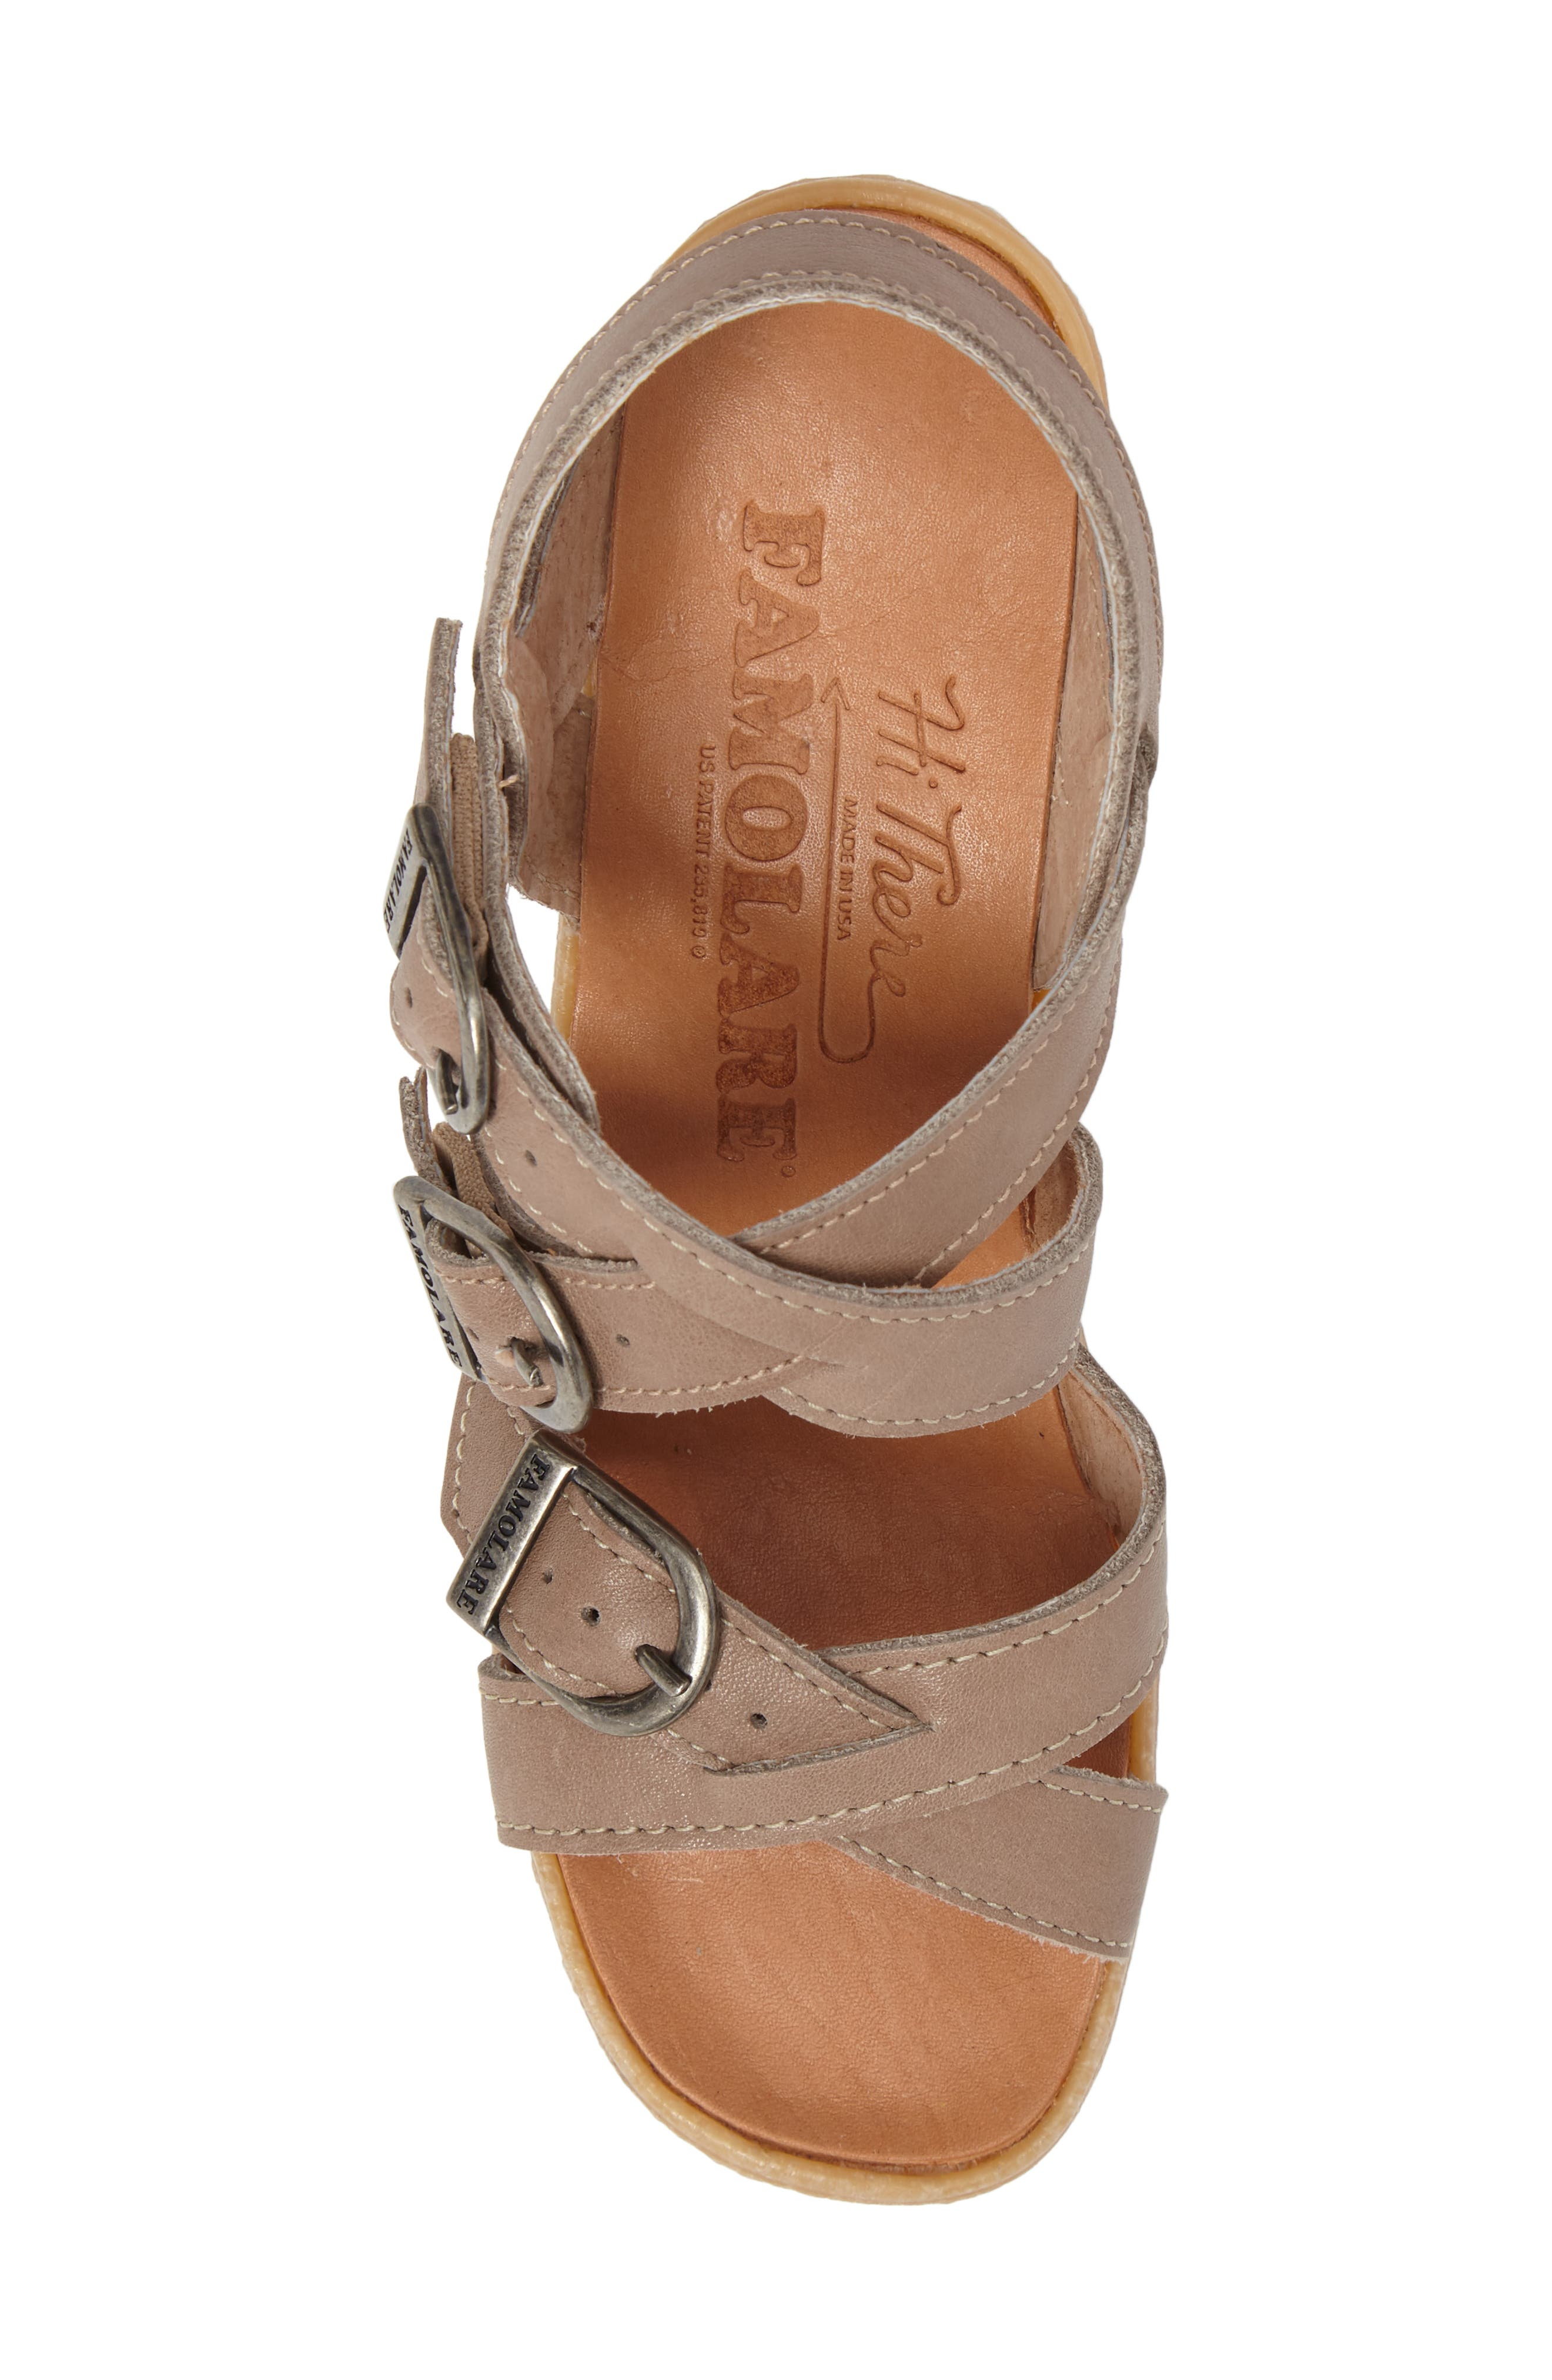 Buckle Up Wedge Sandal,                             Alternate thumbnail 5, color,                             SAND LEATHER